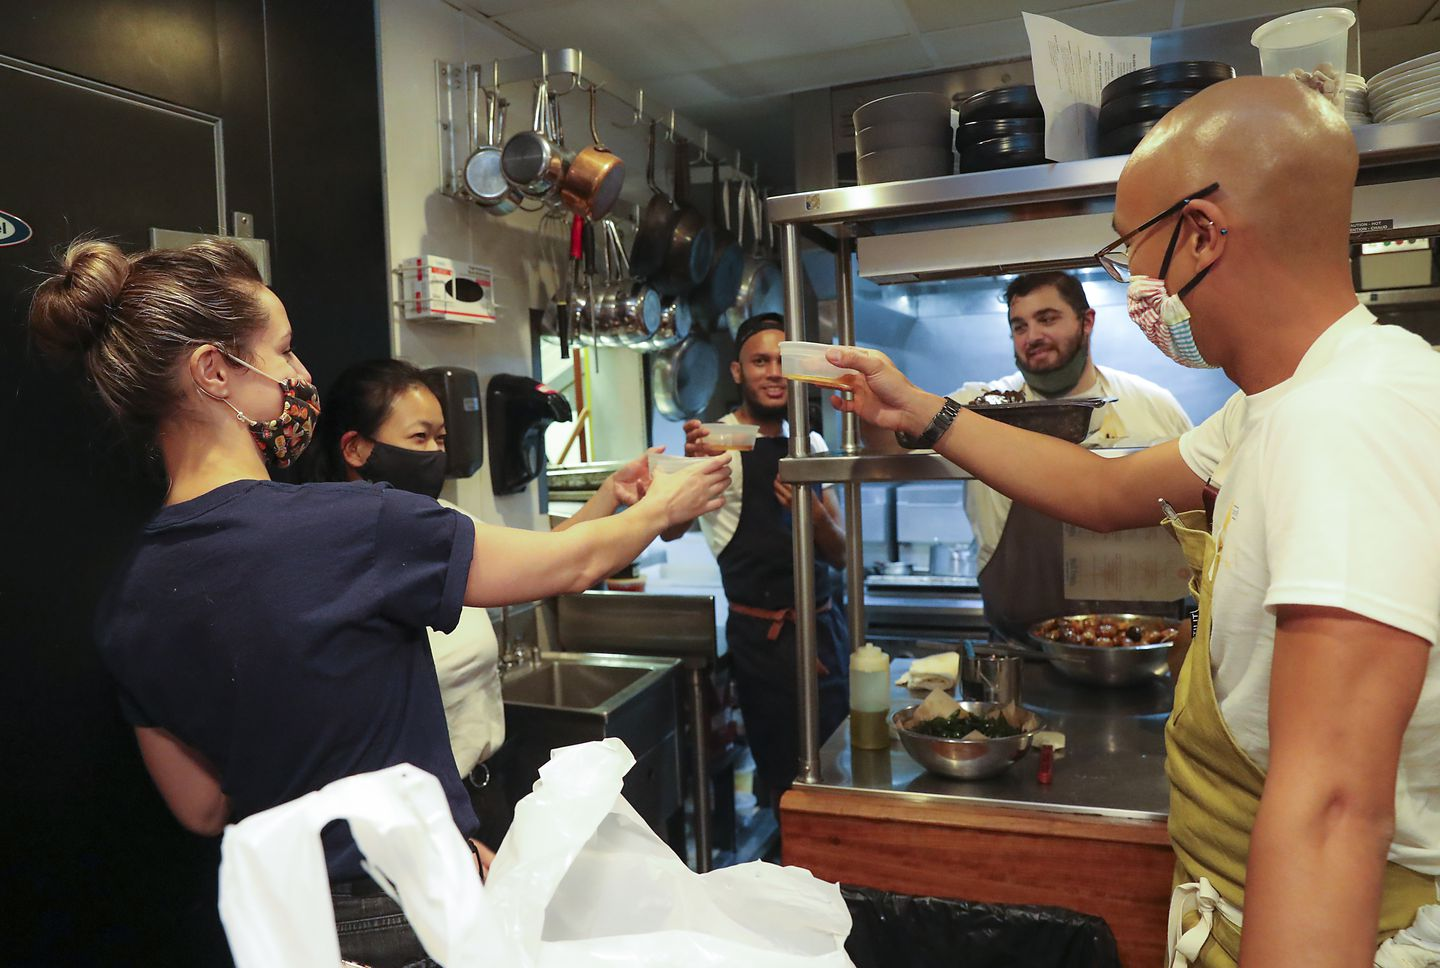 """The crew (left to right) Kate Hardy, Koharu """"Koko"""" Usui, Mohammed Islam, Kosta Tranxidis, and chef Derrick Teh toasting after they prepared 70 dinners at the Sekali pop-up."""